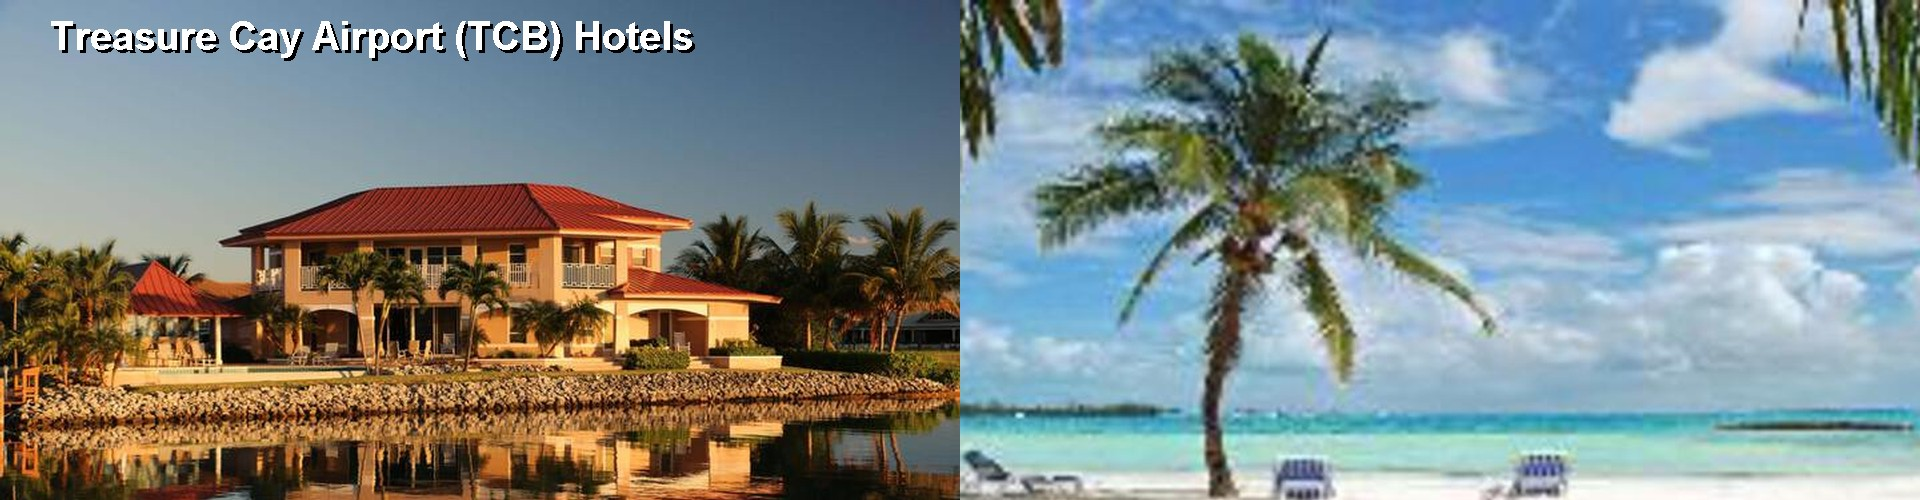 3 Best Hotels near Treasure Cay Airport (TCB)